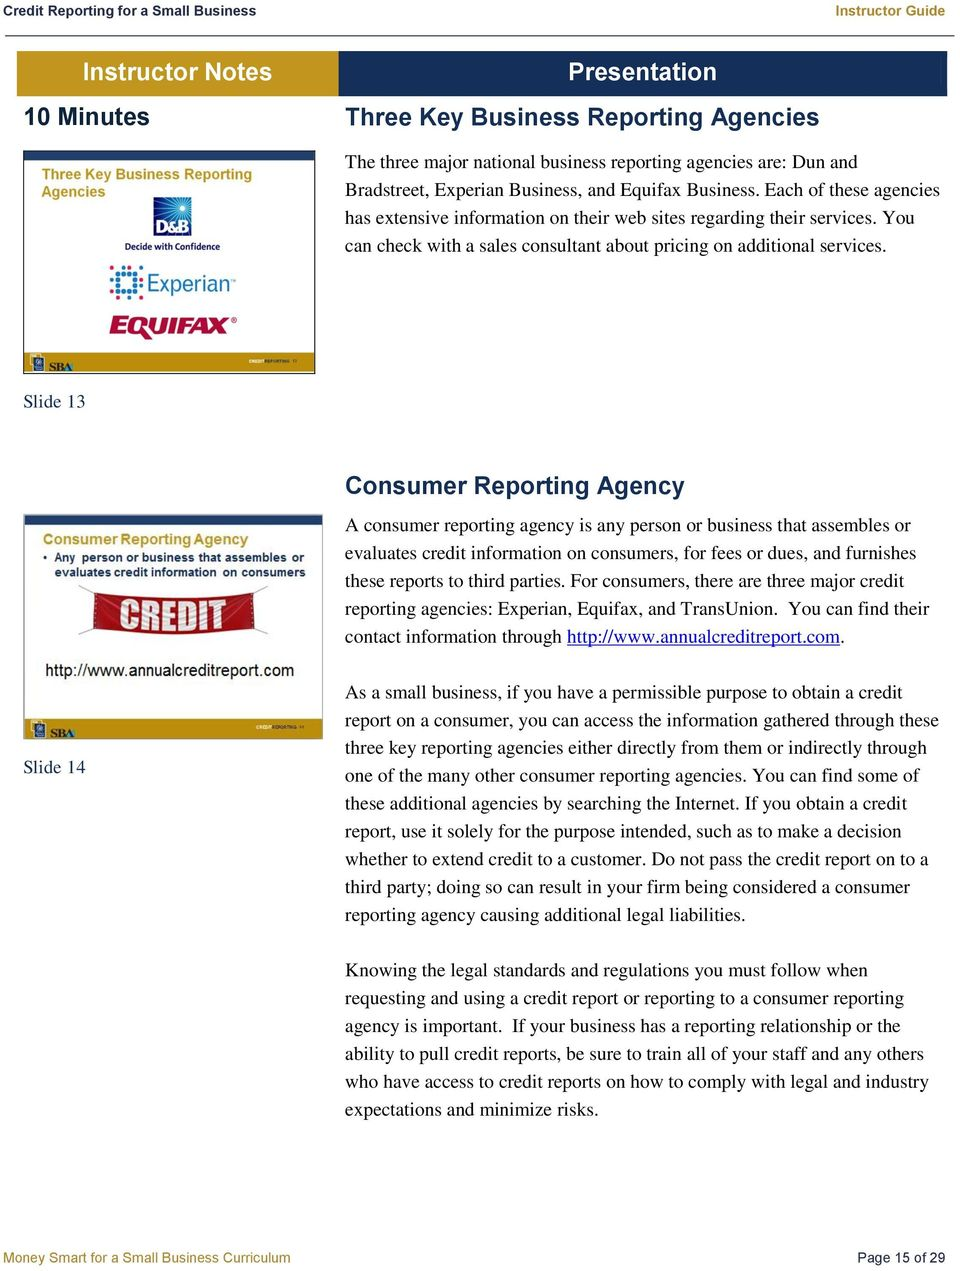 Slide 13 Consumer Reporting Agency A consumer reporting agency is any person or business that assembles or evaluates credit information on consumers, for fees or dues, and furnishes these reports to